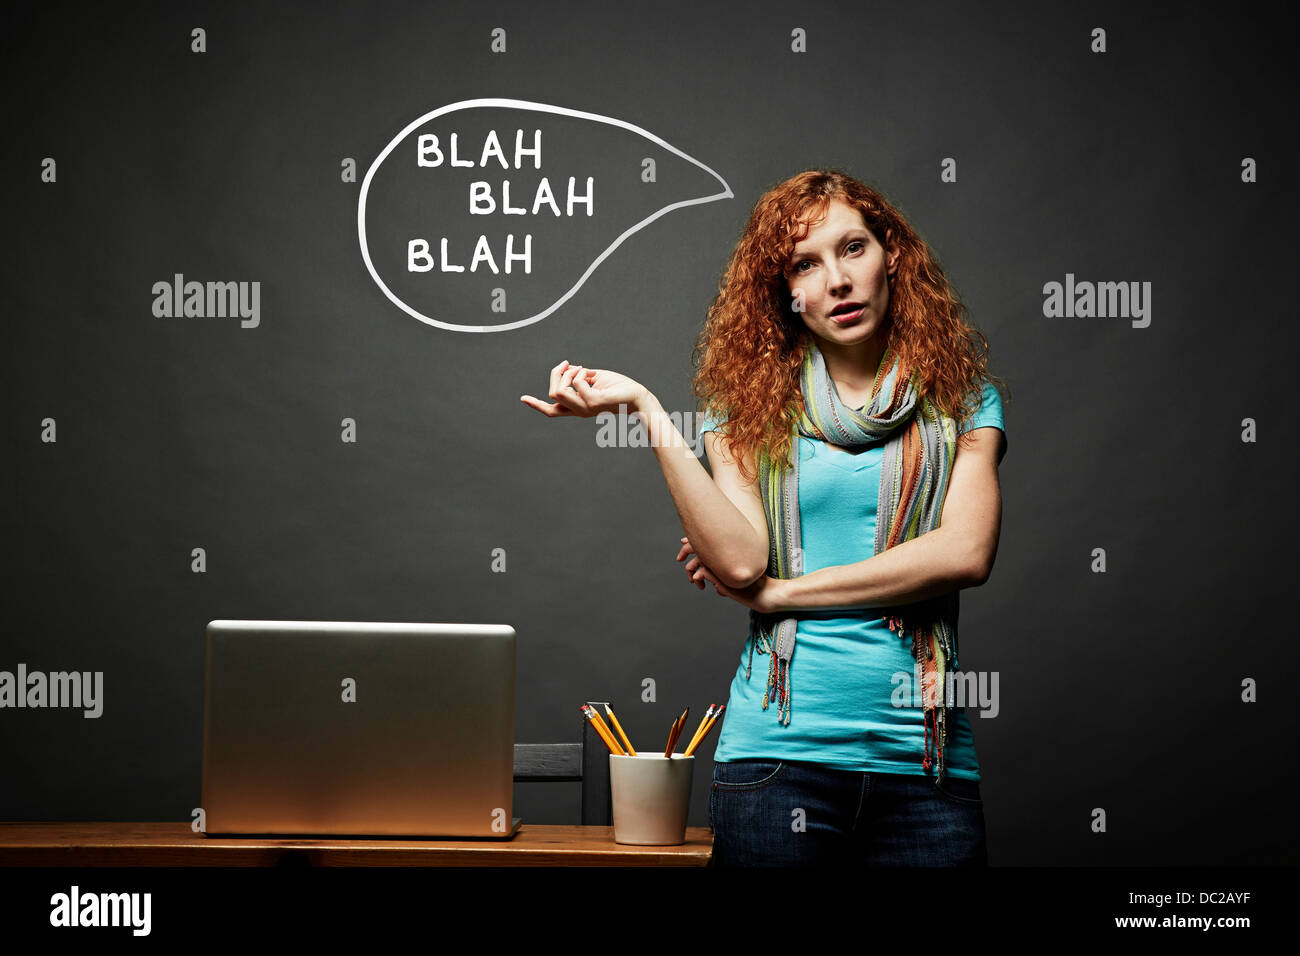 Woman talking continuously, blah blah blah speech bubble - Stock Image